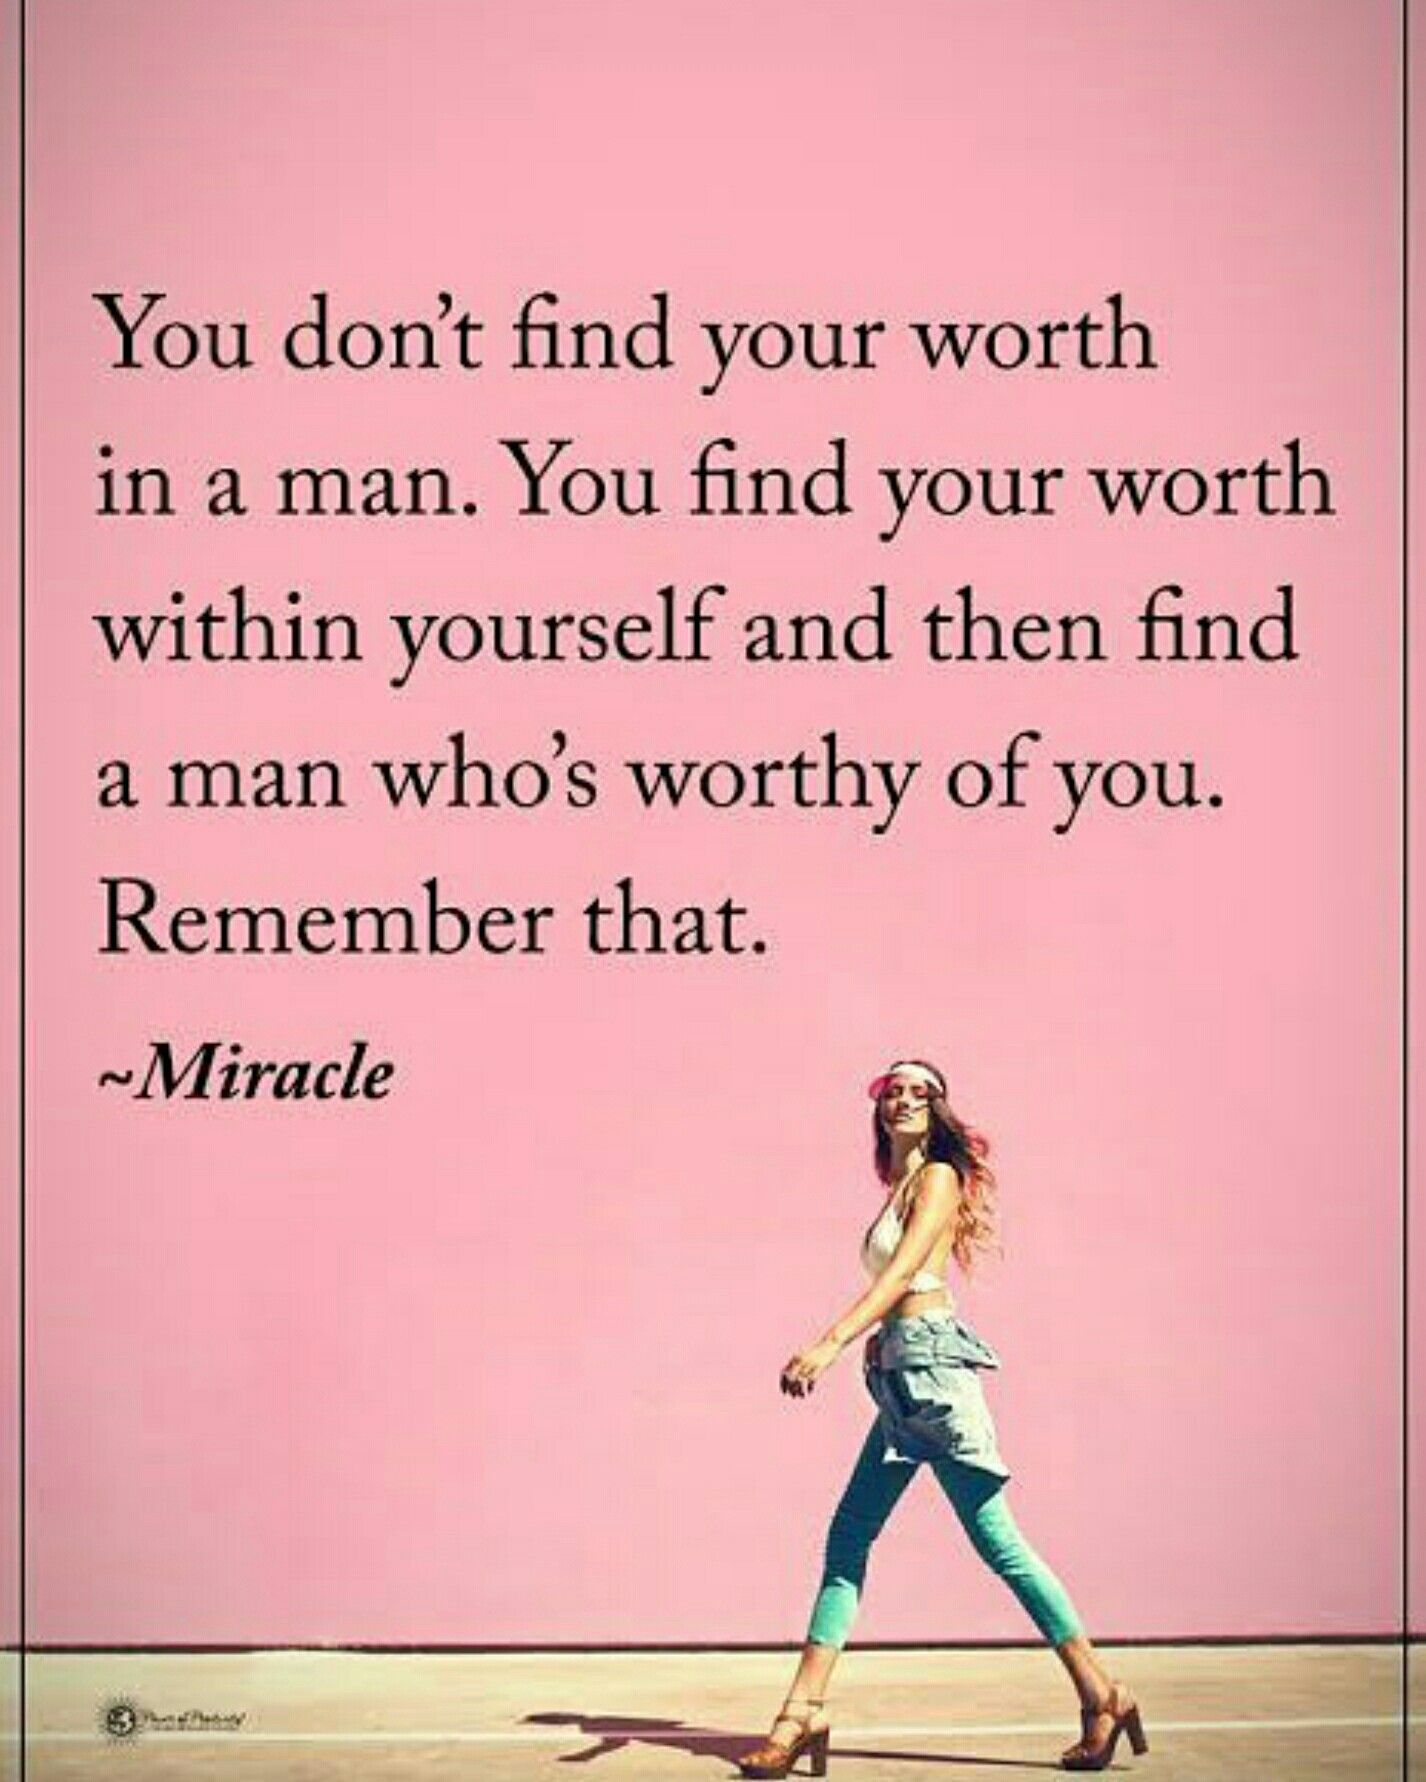 Fantastic Quotes About Life So Very True  Words  Pinterest  Wisdom Thoughts And Truths